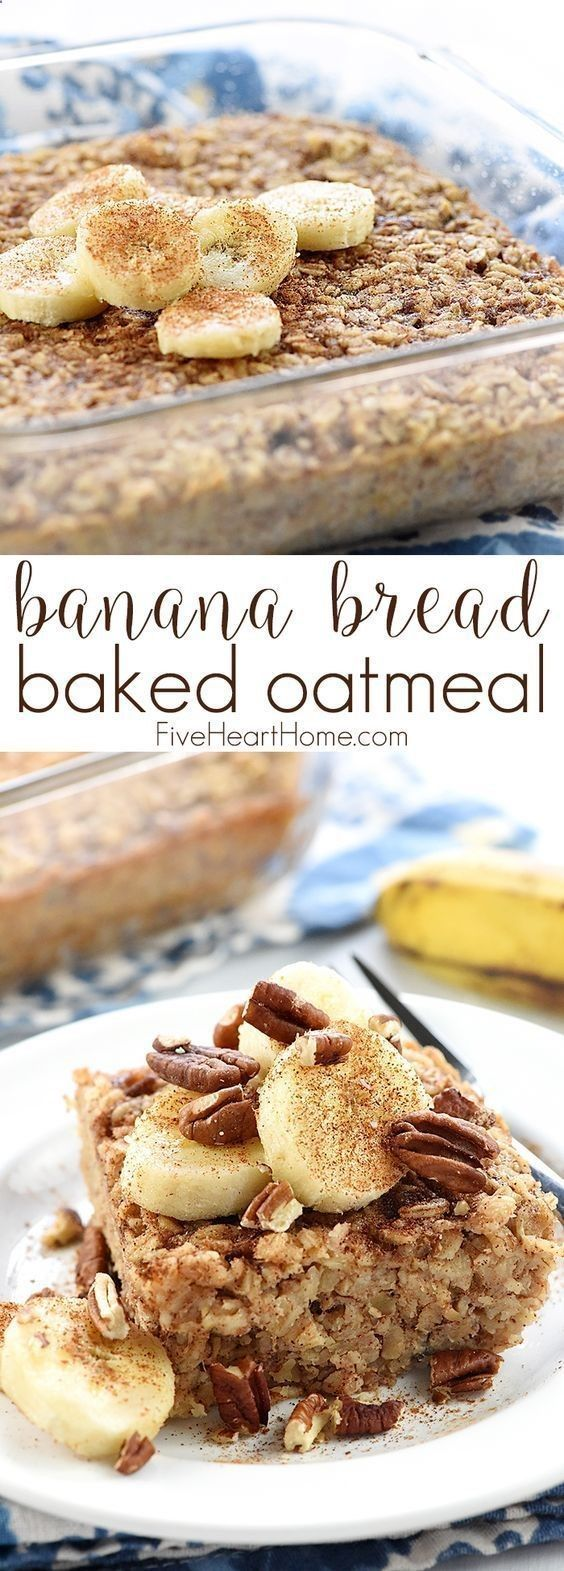 Banana Bread Baked Oatmeal ~ boasts the delicious flavor of banana bread, but it's made with wholesome oats, pecans, and coconut oil for a healthy, filling breakfast or brunch recipe! | FiveHeartHome.com #oatmealbreadrecipes